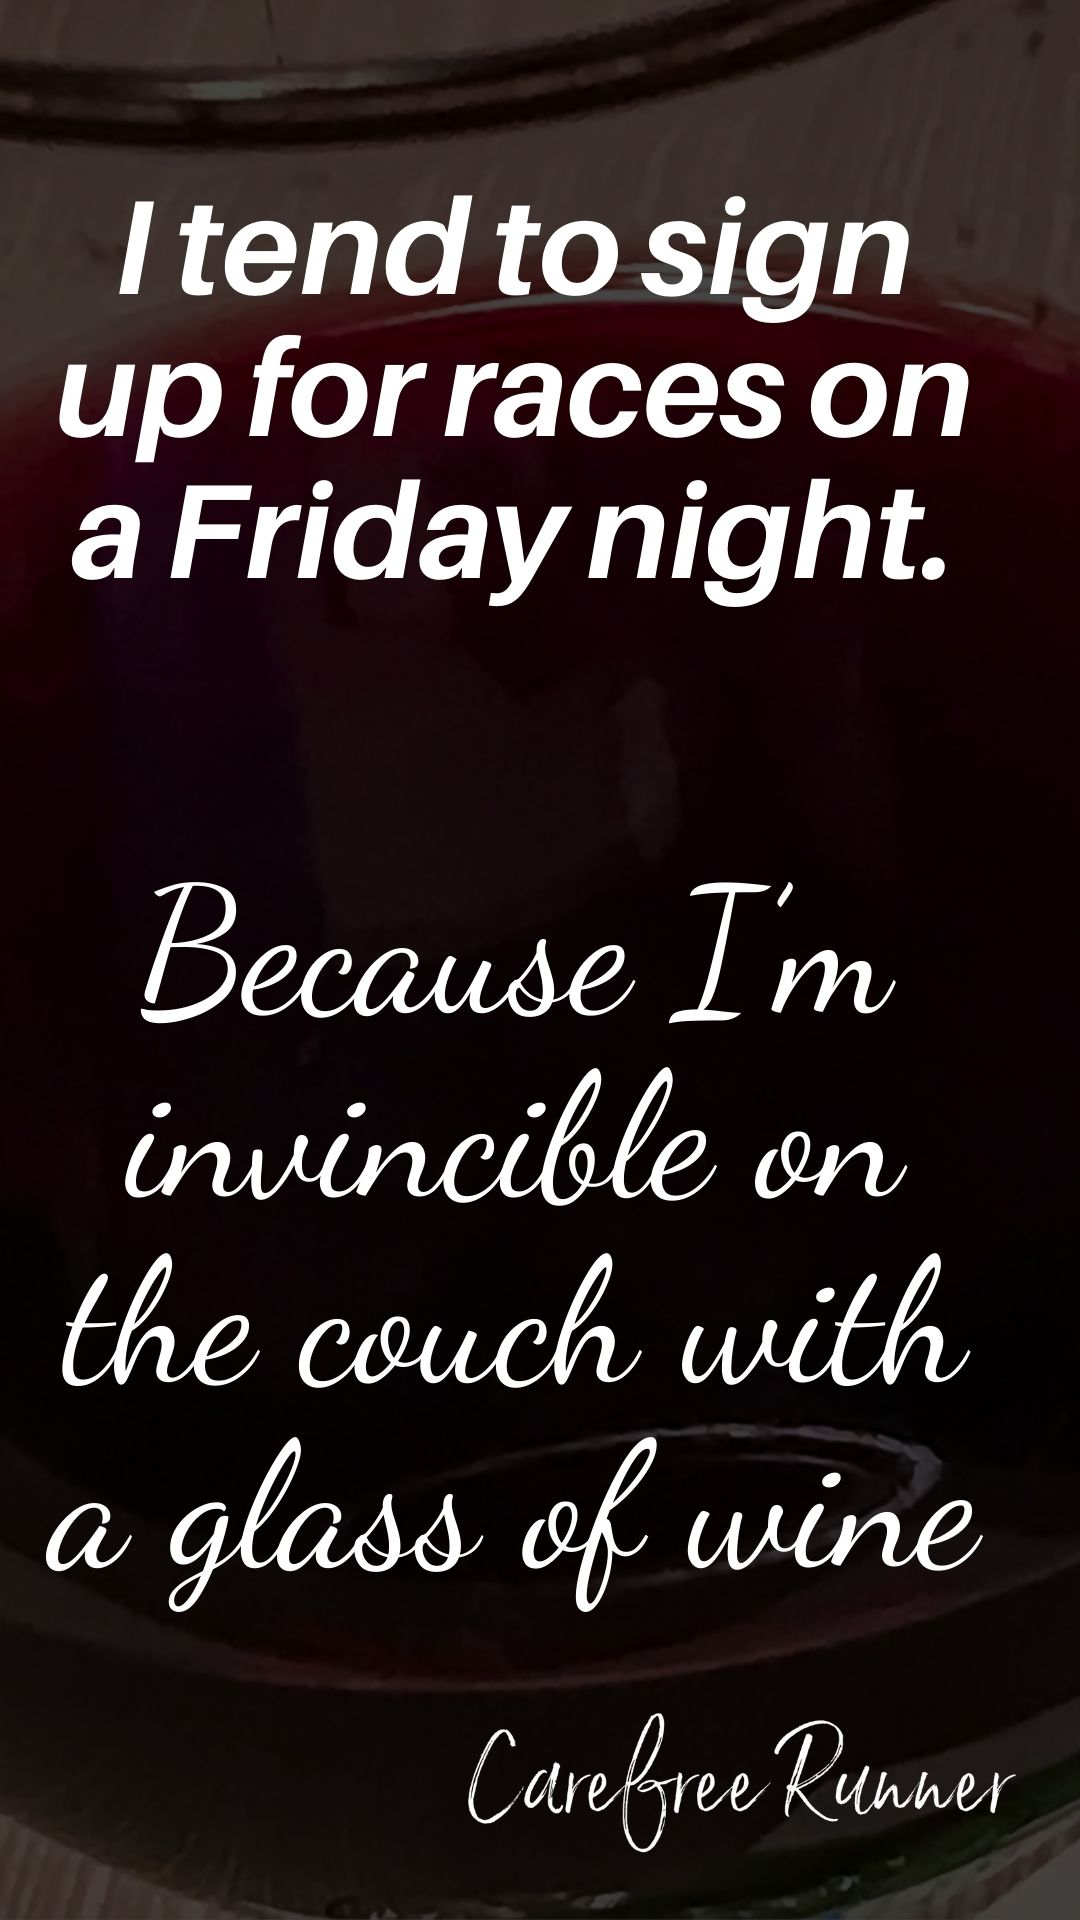 I'm invincible on the couch woth a glass of wine